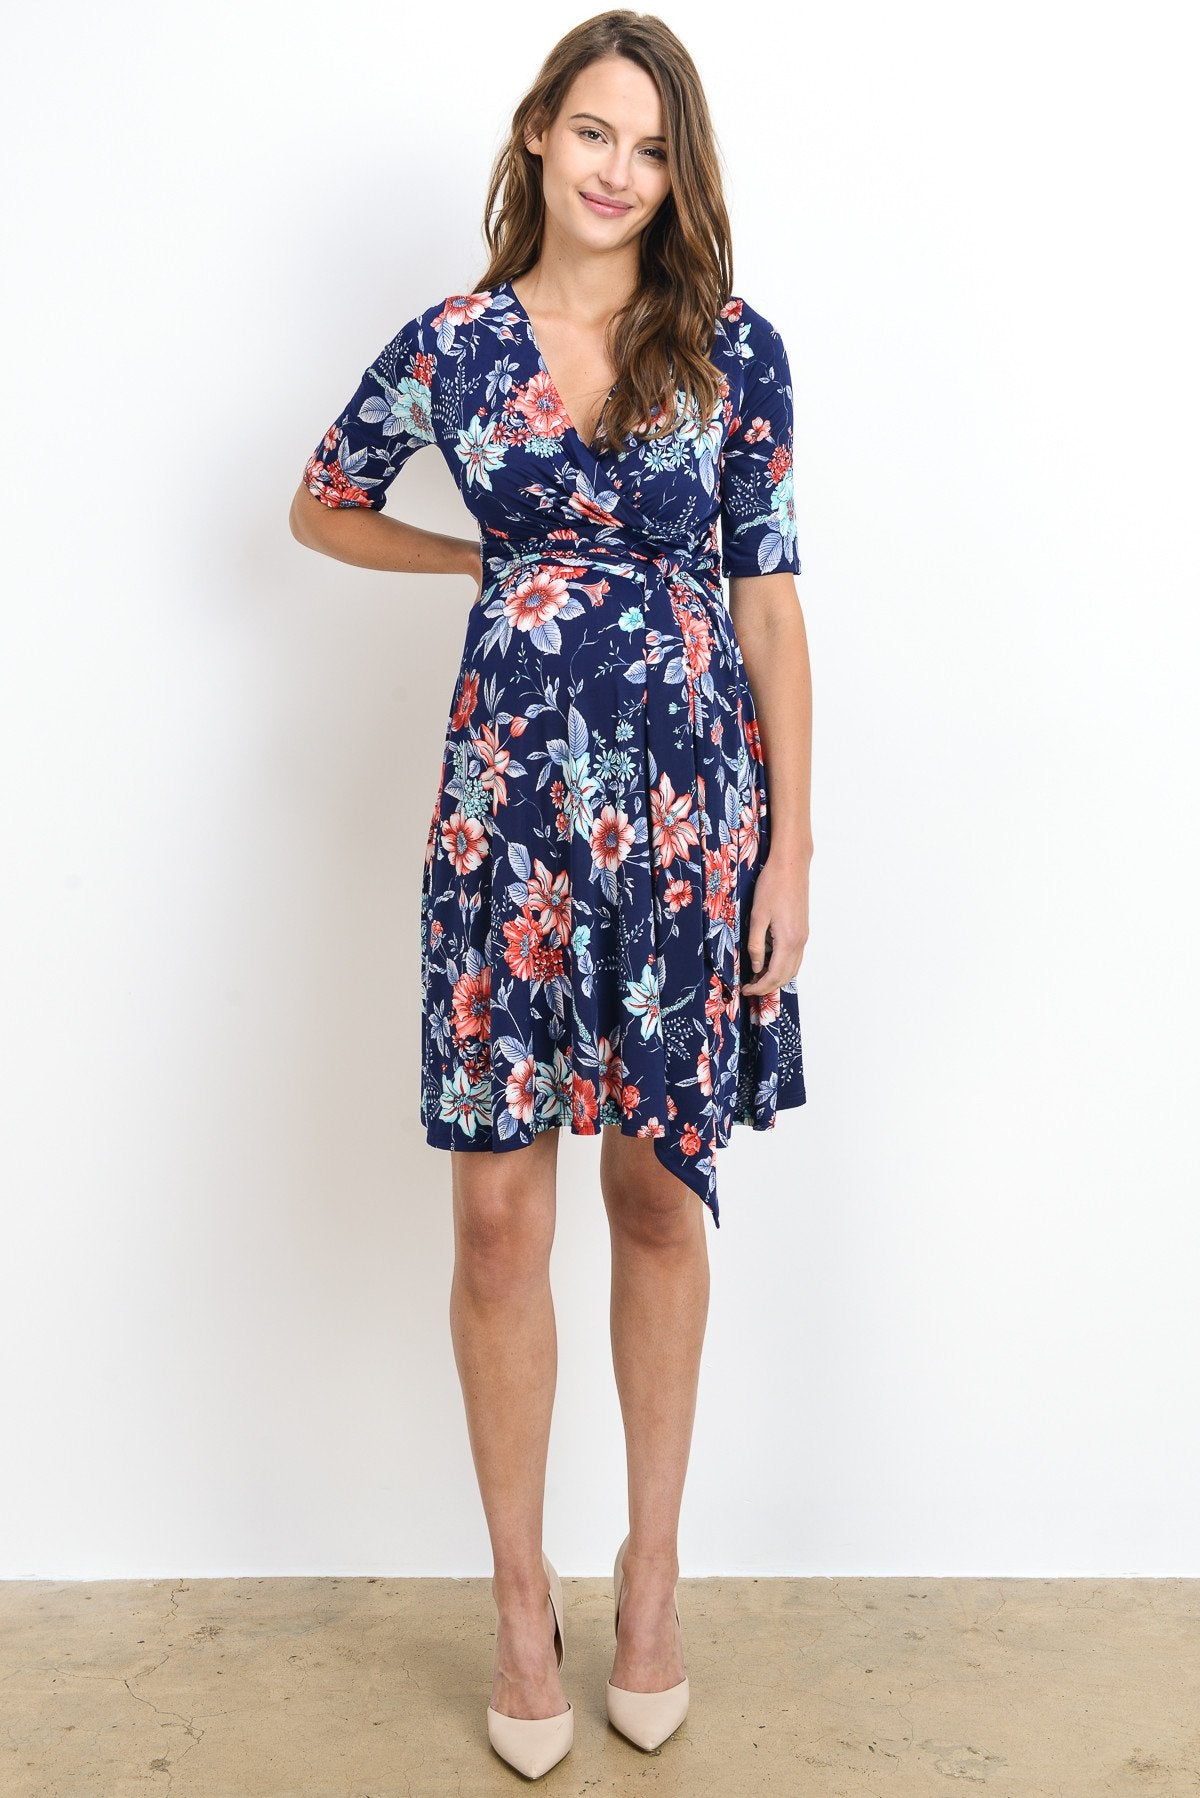 Floral Faux Wrap with Tie Maternity & Nursing Dress